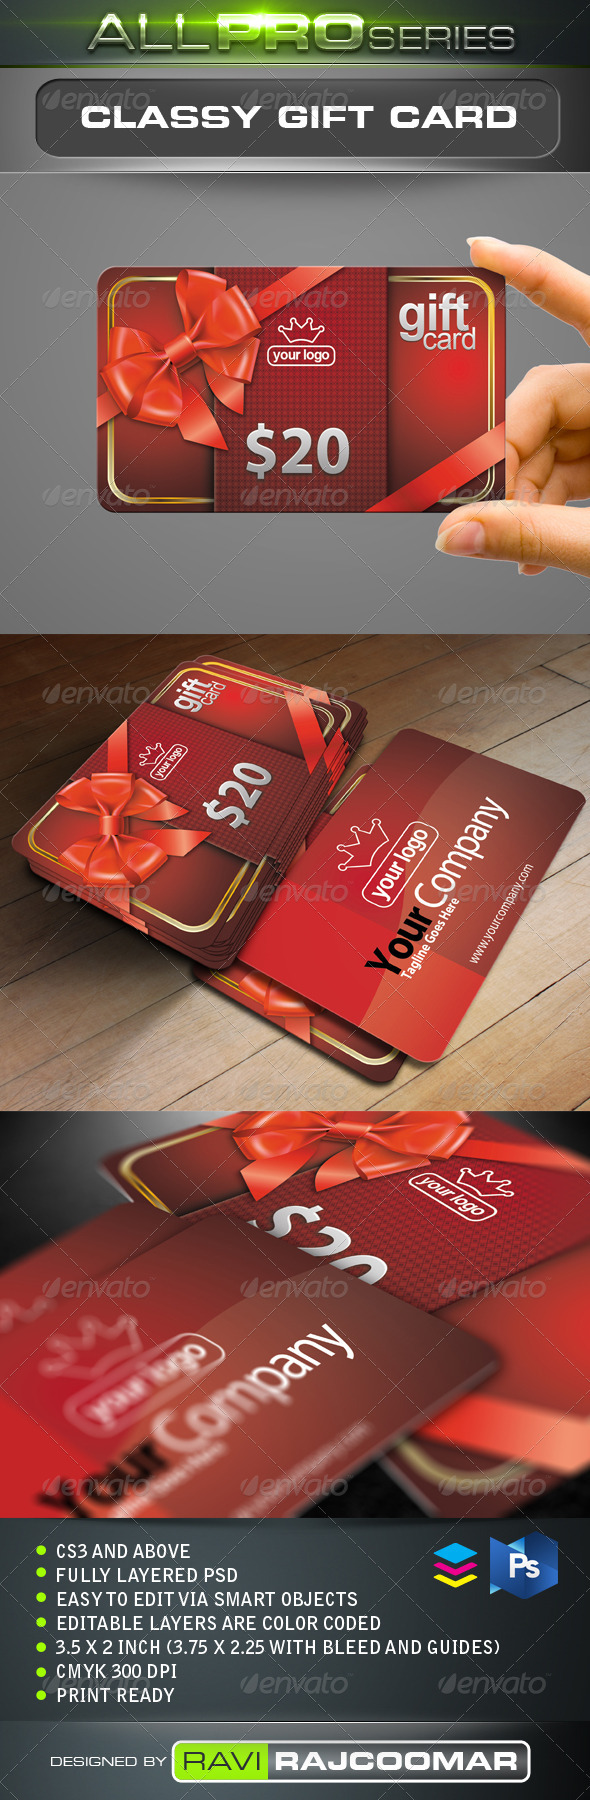 Classy Gift Card - Loyalty Cards Cards & Invites